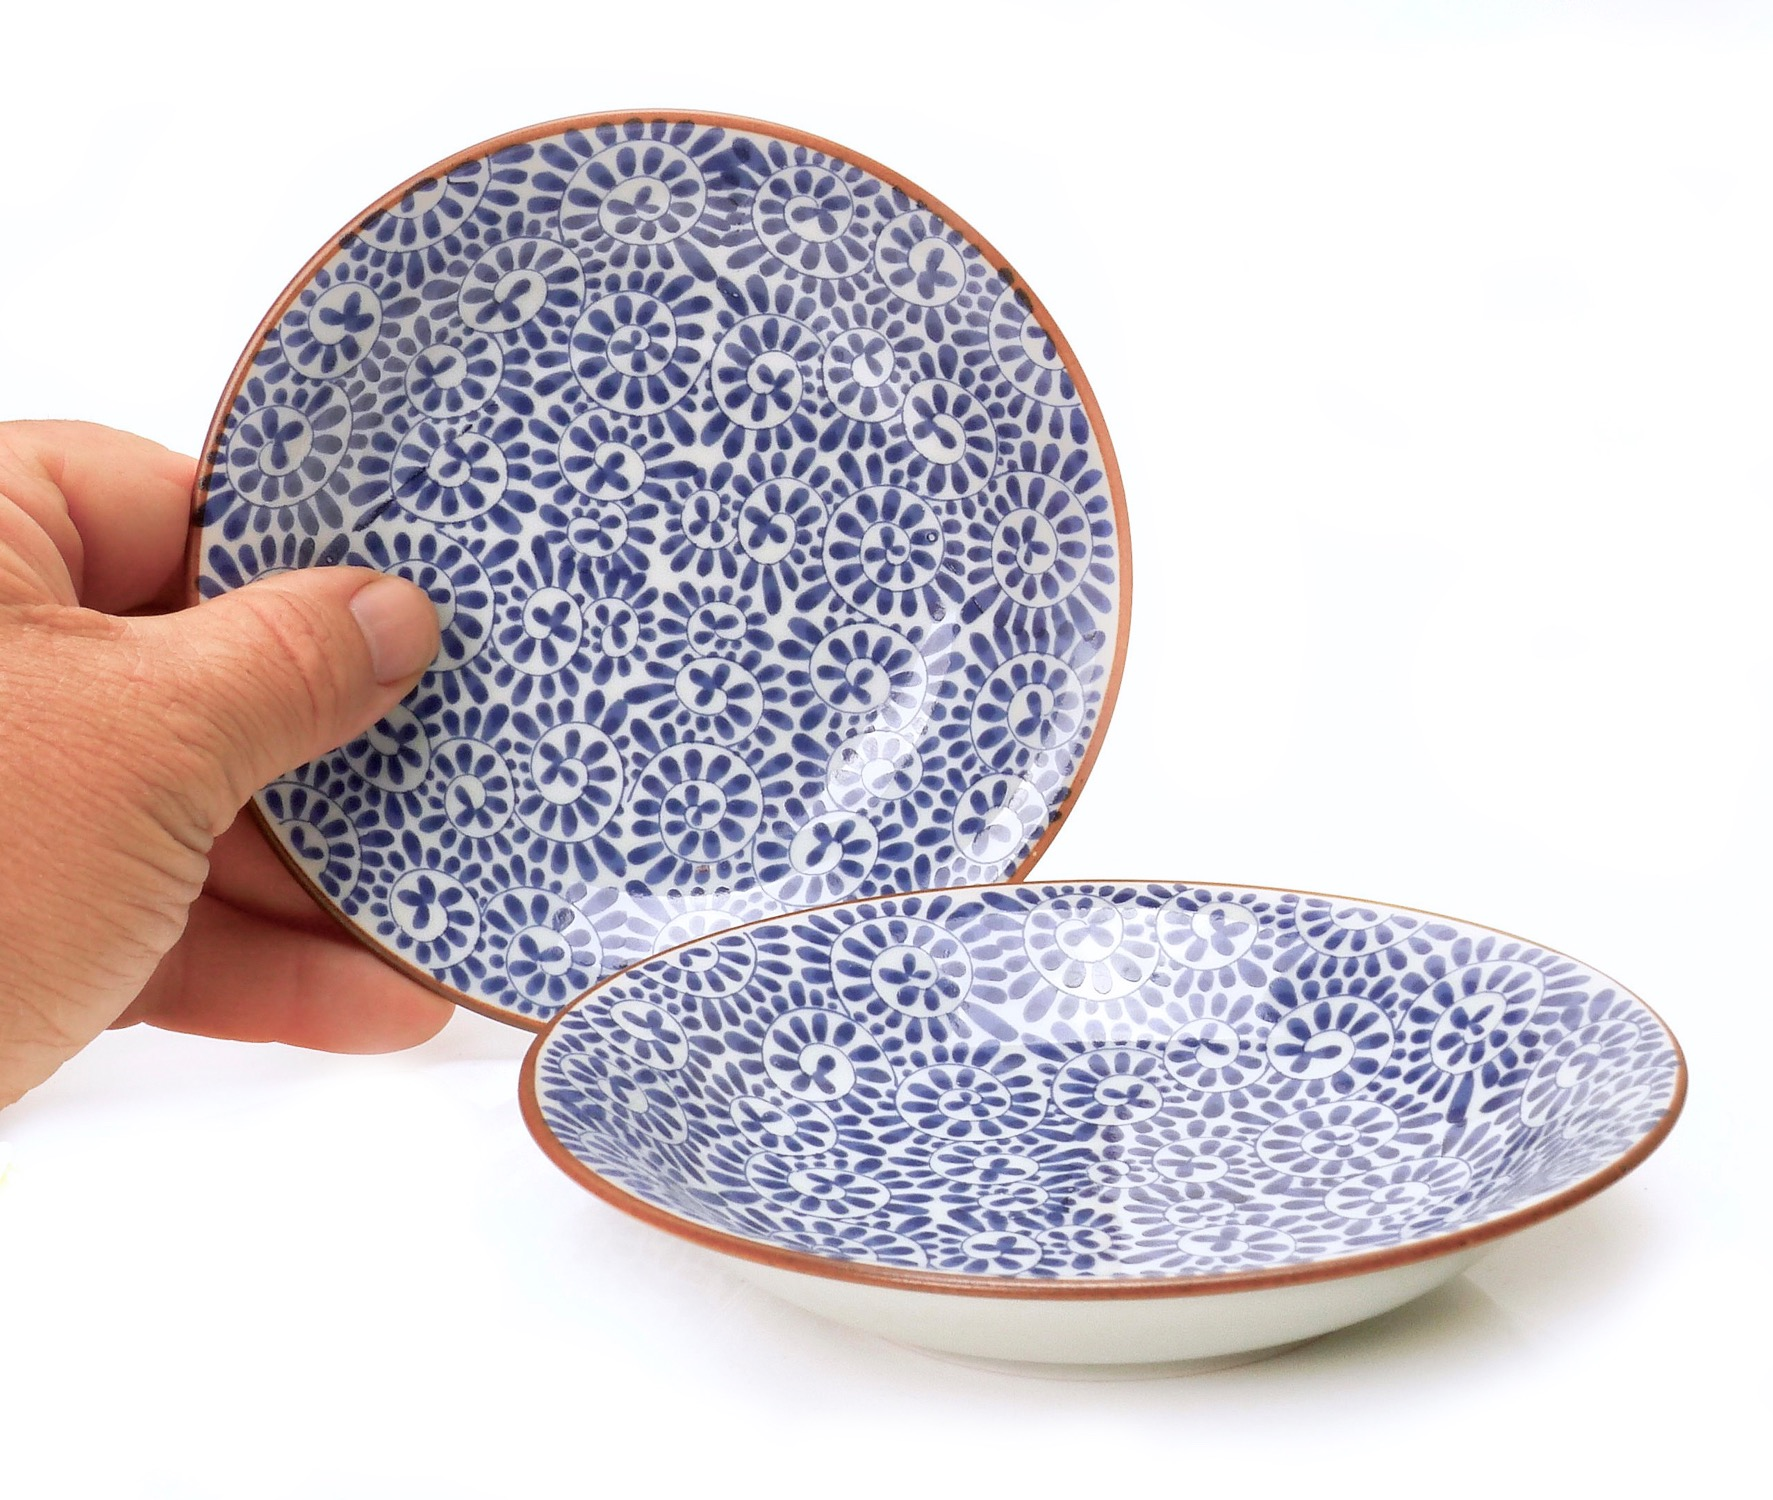 Image of Porcelain White and Indigo Patterned Appetizer Dish, 4-Inch, Set Of 4